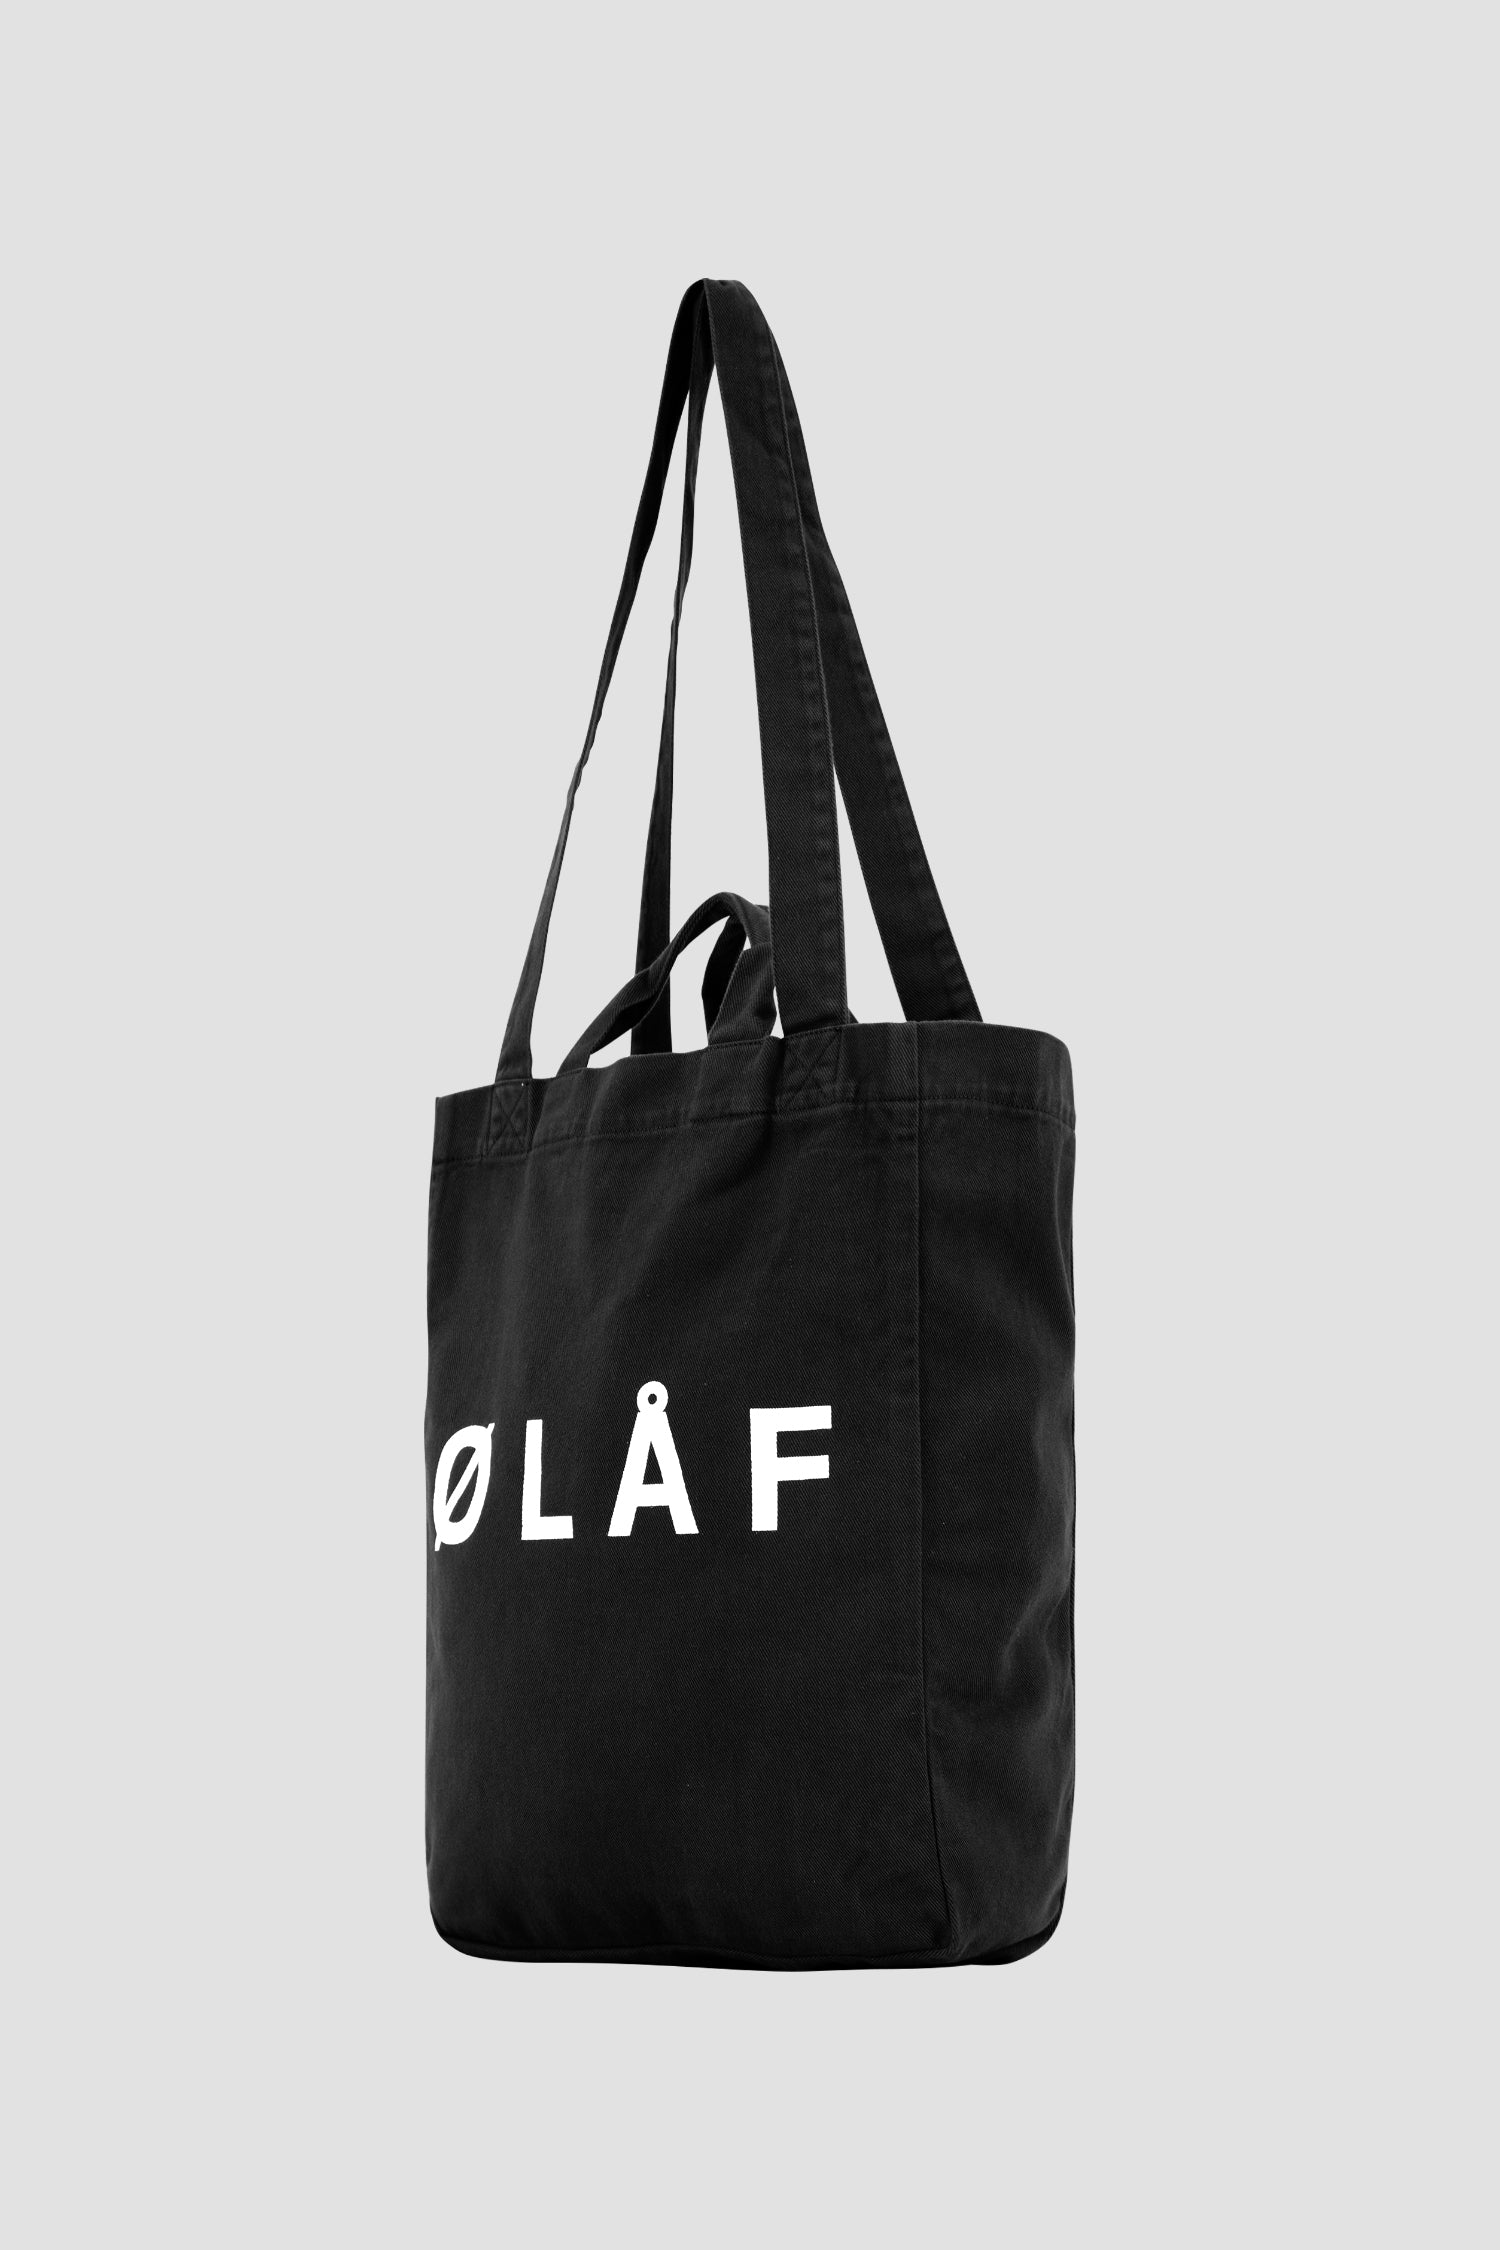 ØLÅF Tote Bag <br>Black / White